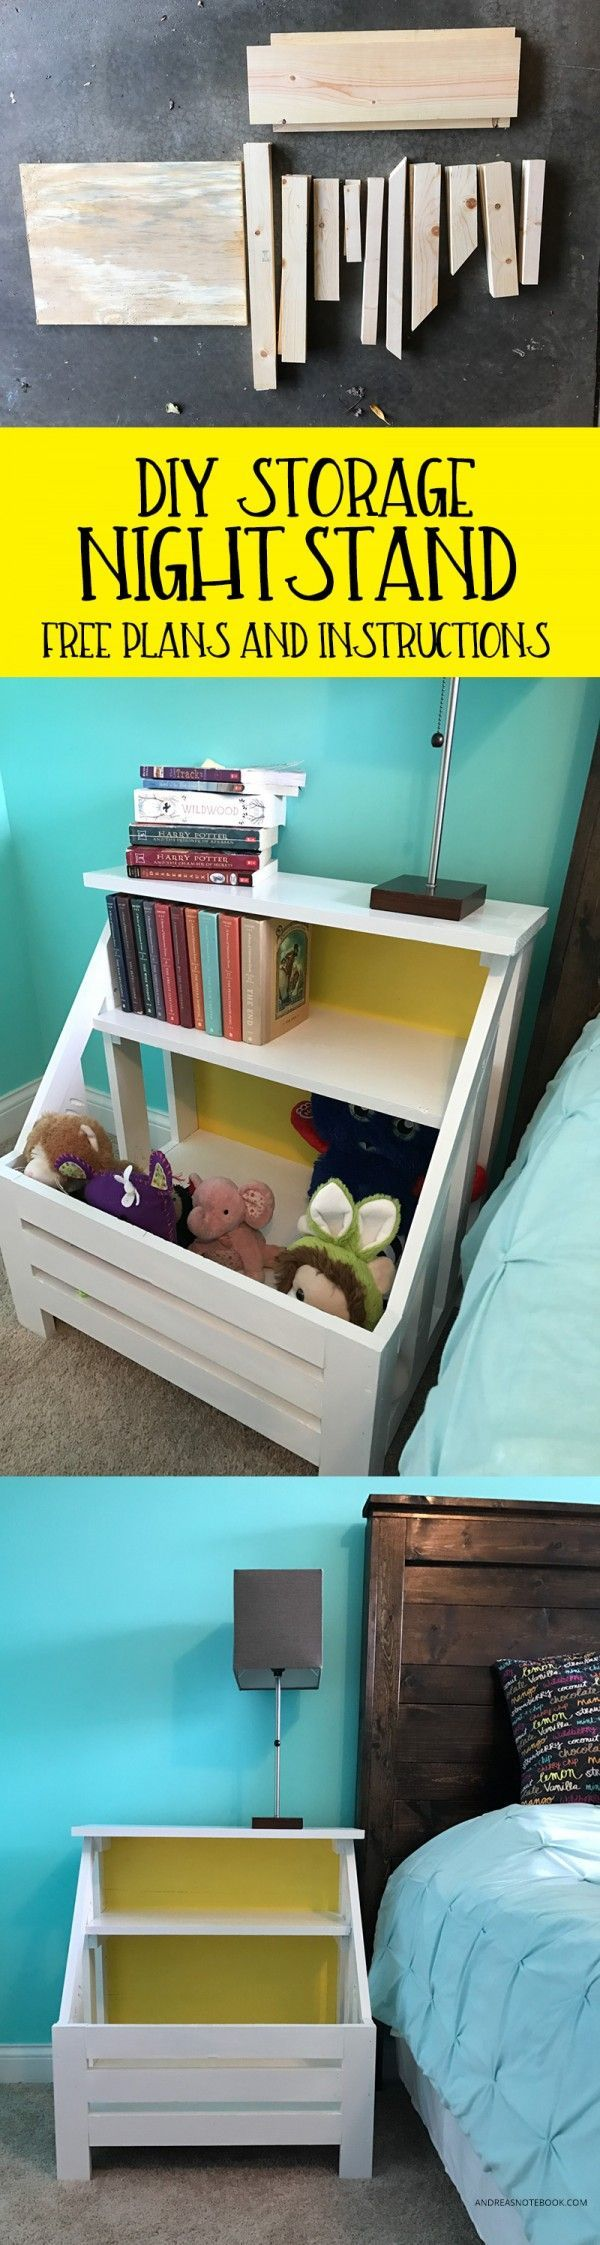 Check out how to build an easy DIY nightstand with storage @istandarddesign